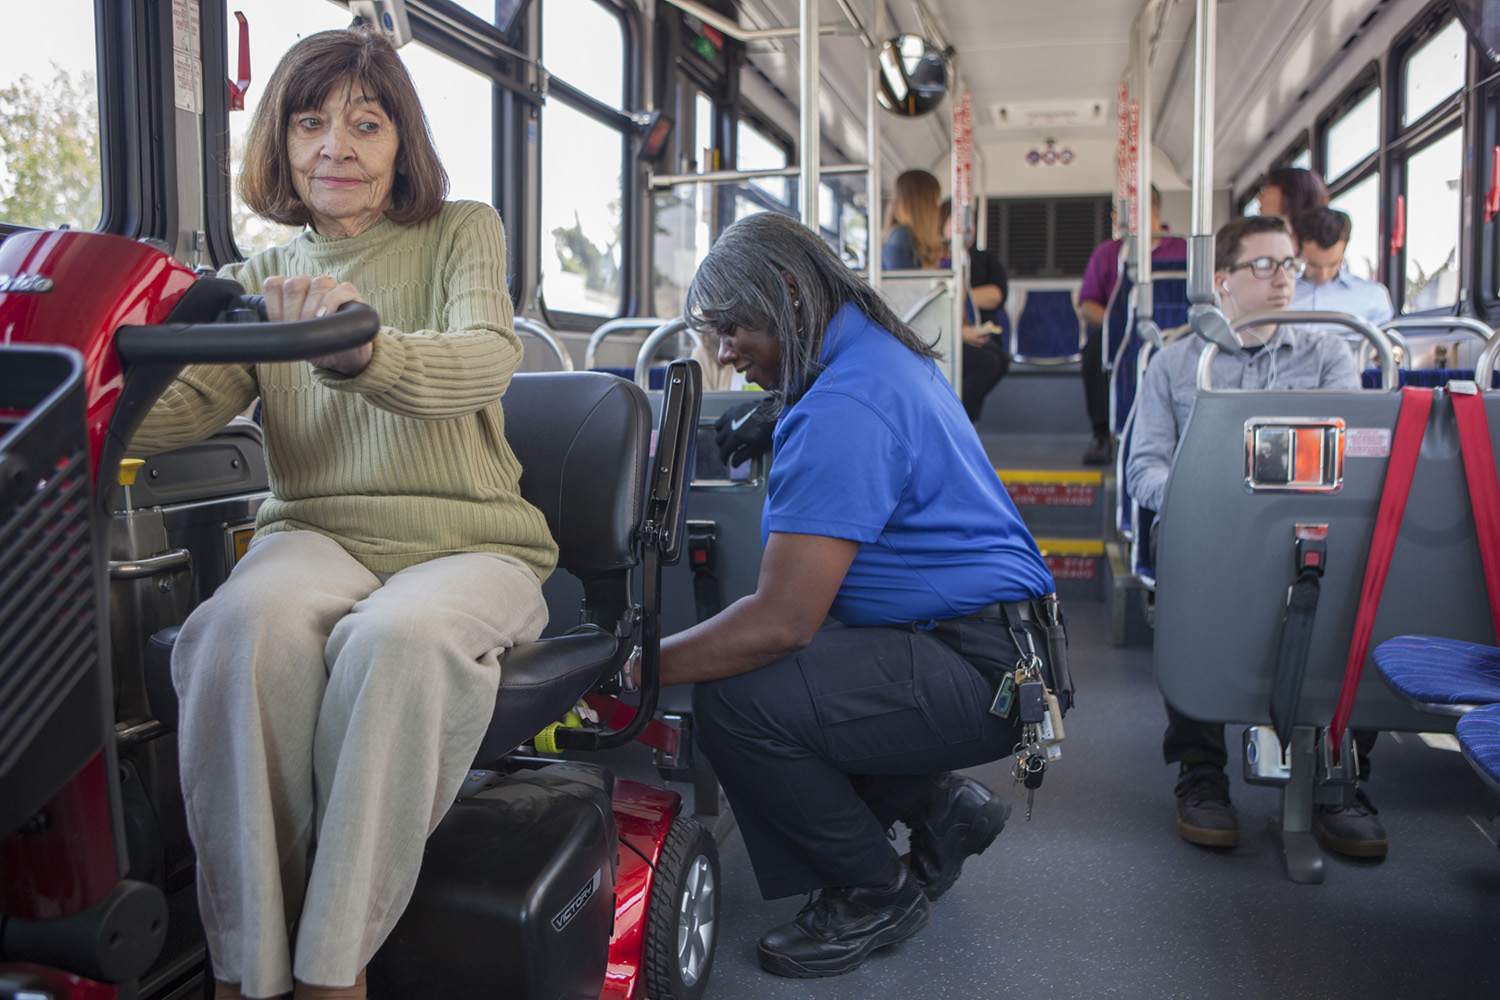 woman on mobility scooter getting buckled in by bus driver